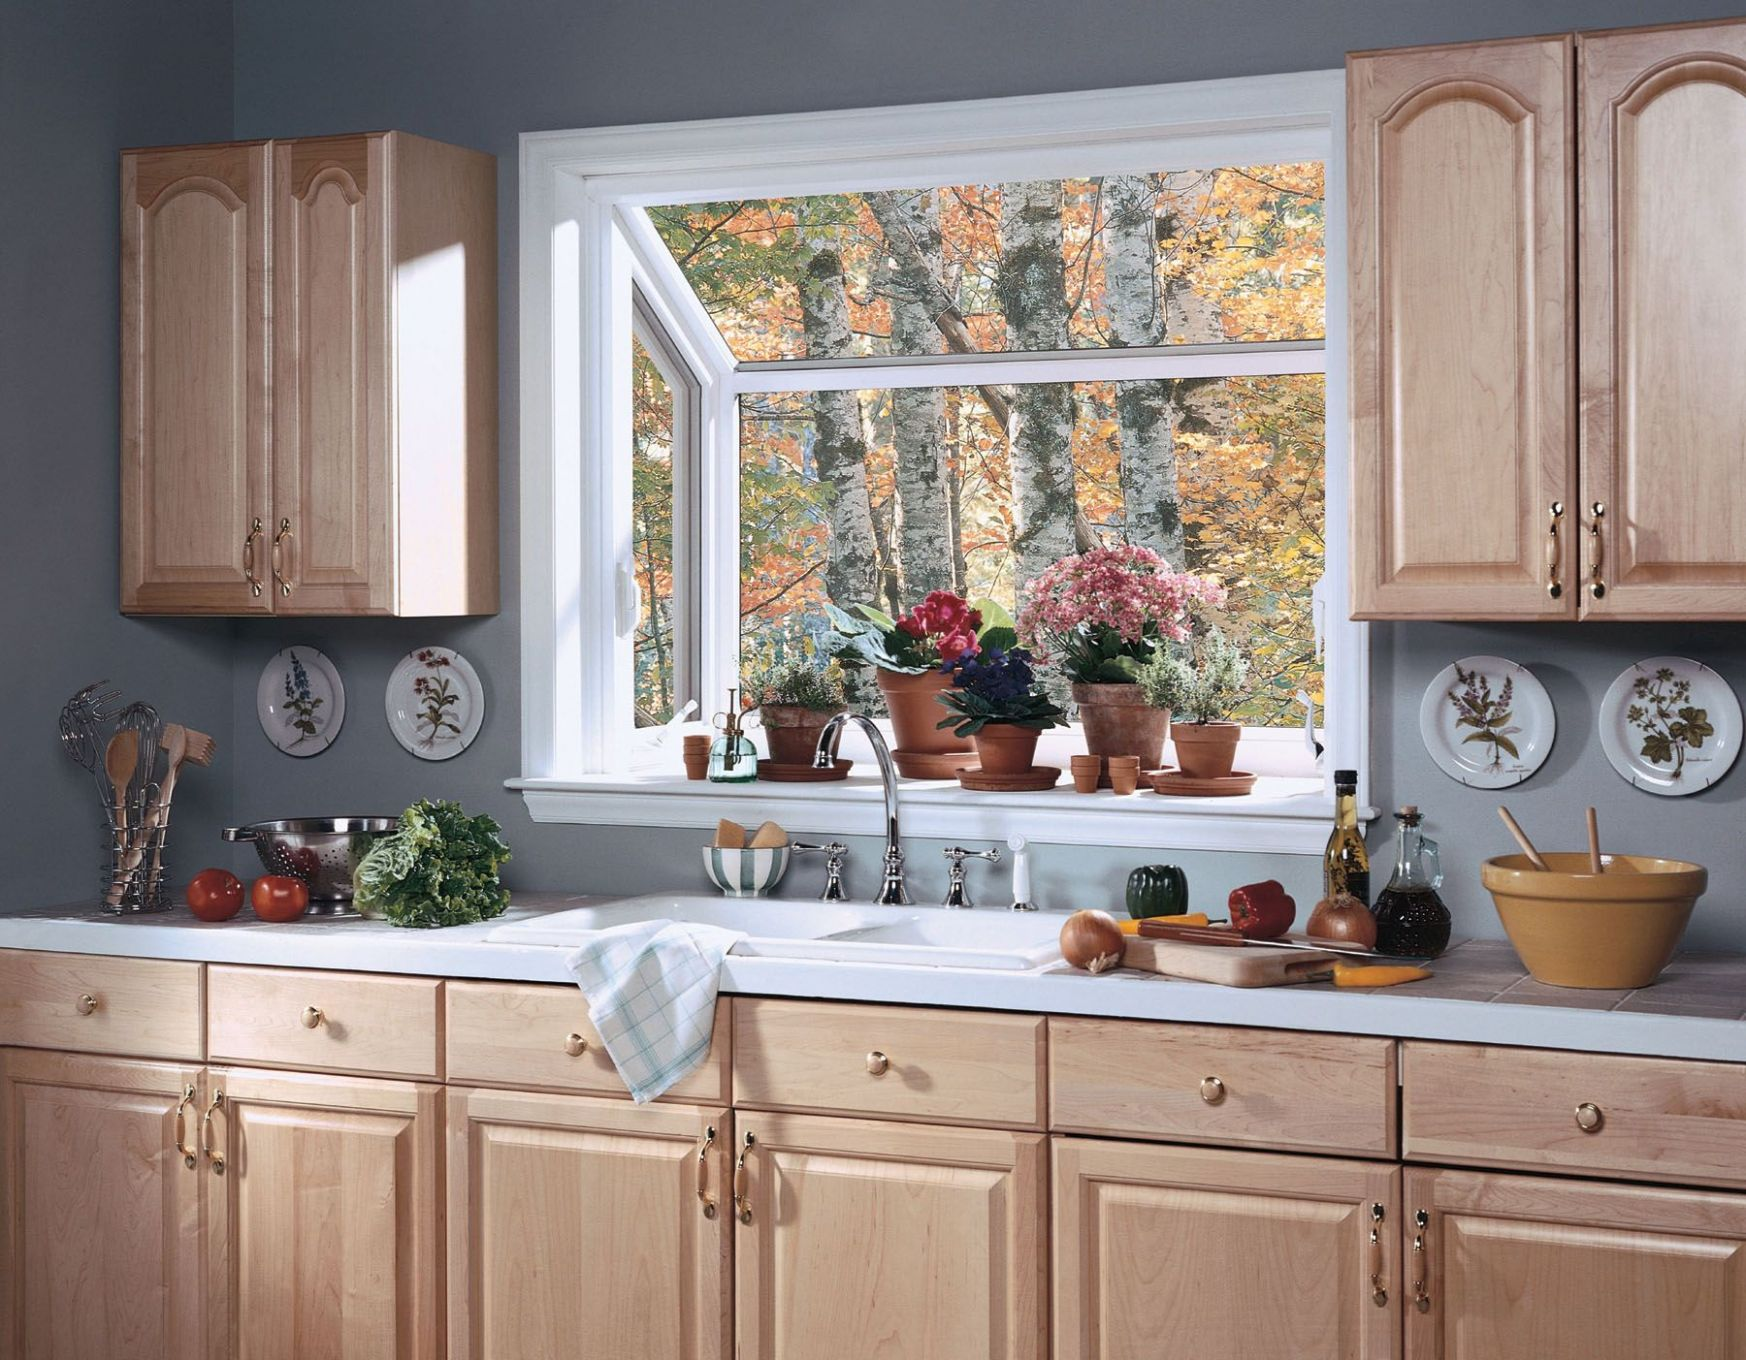 Mural of Garden Windows for Kitchen, Refreshing Part in the ..